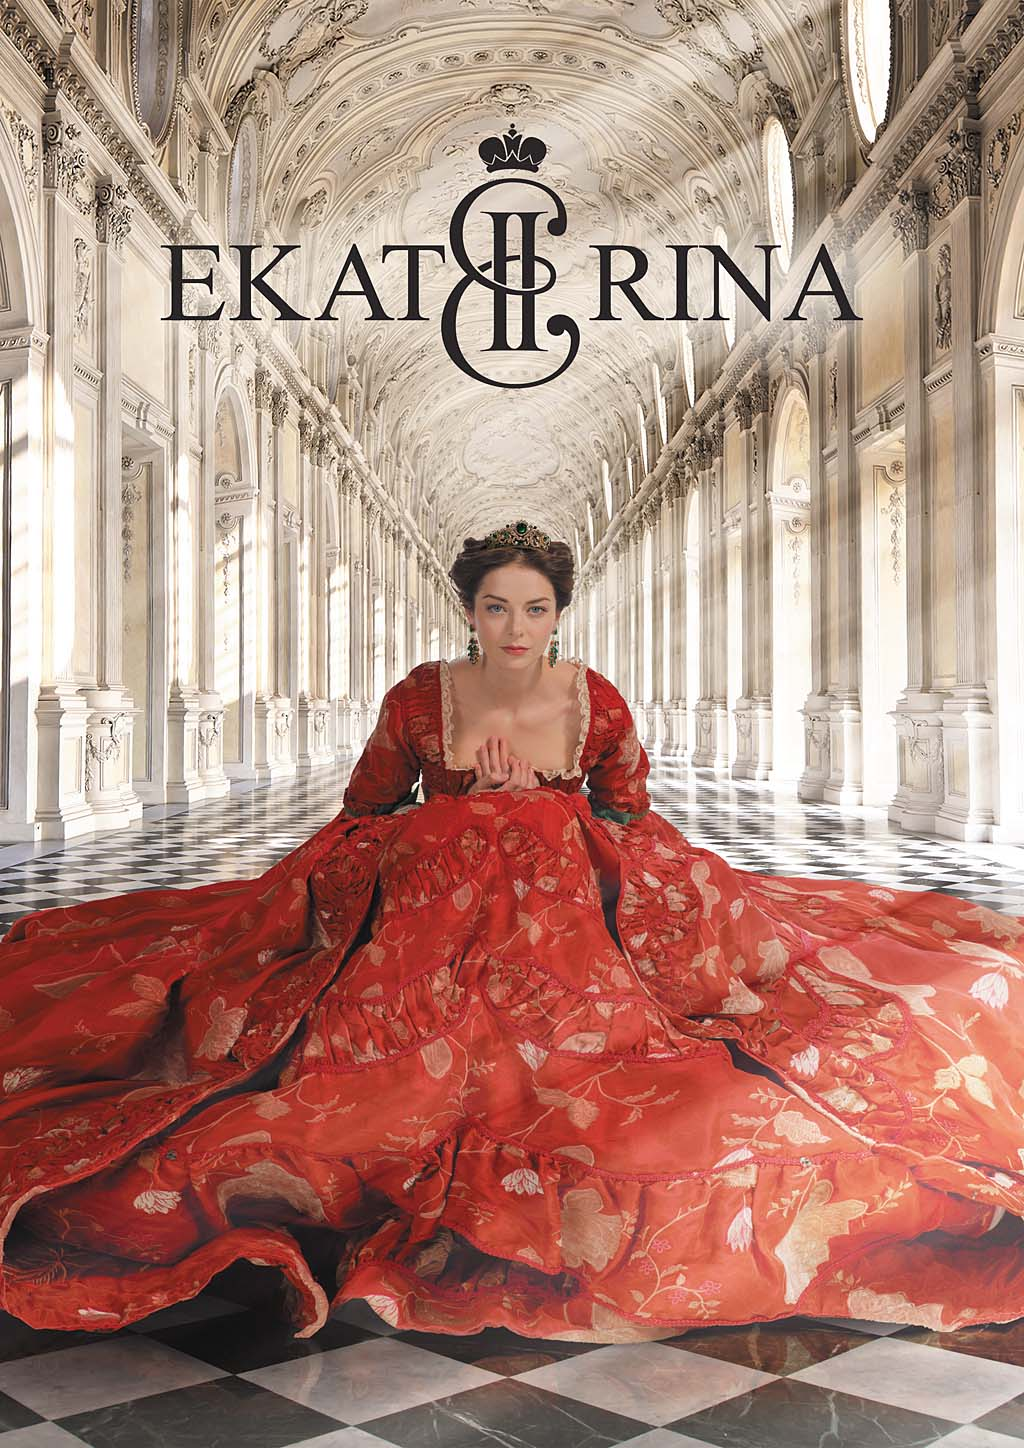 "TV-SERIES ""EKATERINA"" WILL BE AIRED IN JAPAN FOR THE FIRST TIME"